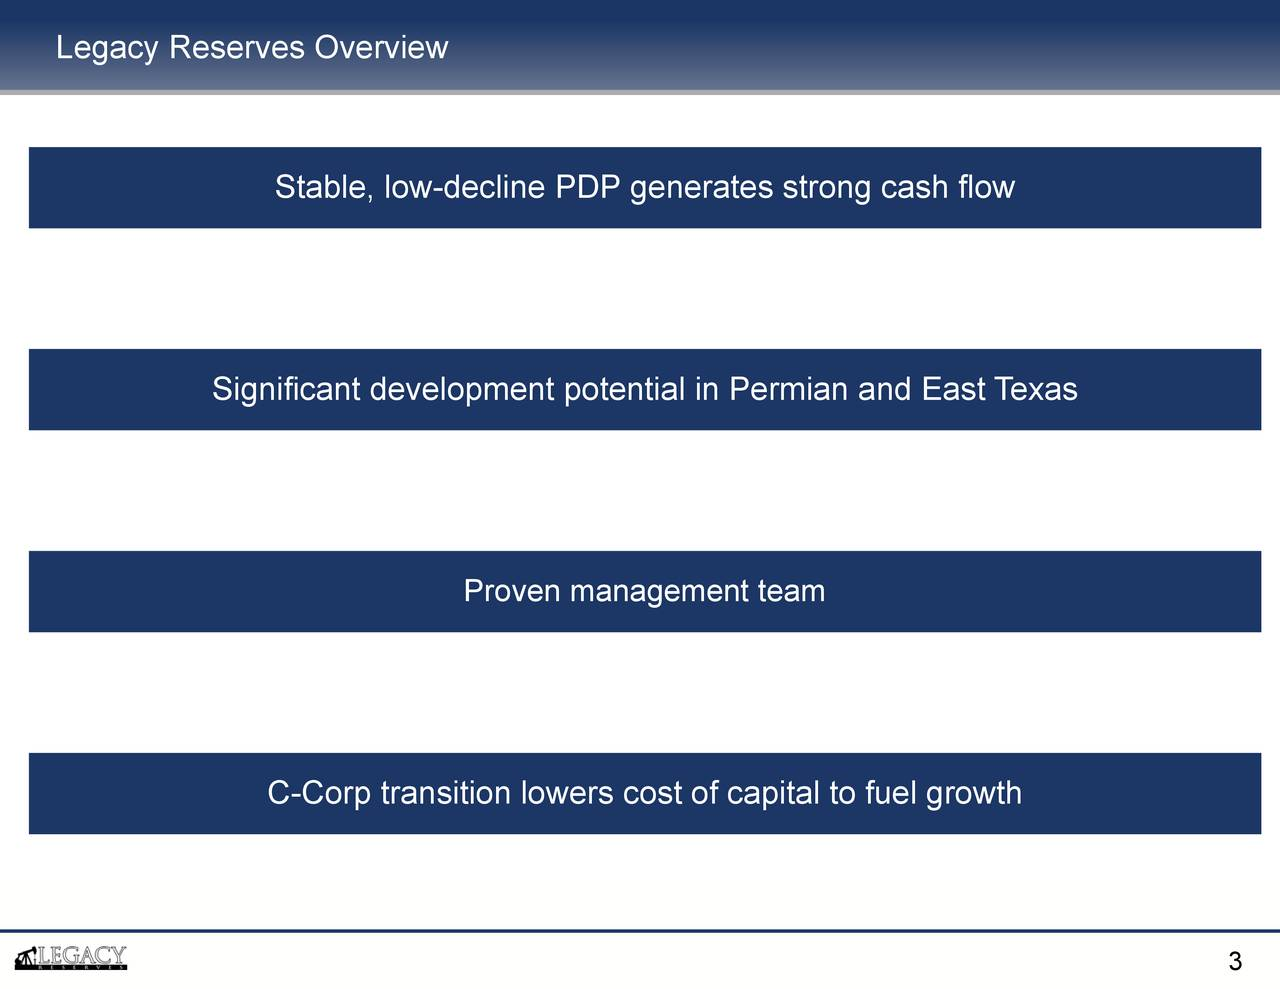 Proven management team Stable, low-decline PDP generates strong C-Corp transition lowers cost of capital to fuel growth Significant development potential in Permian and East Texas Legacy Reserves Overview